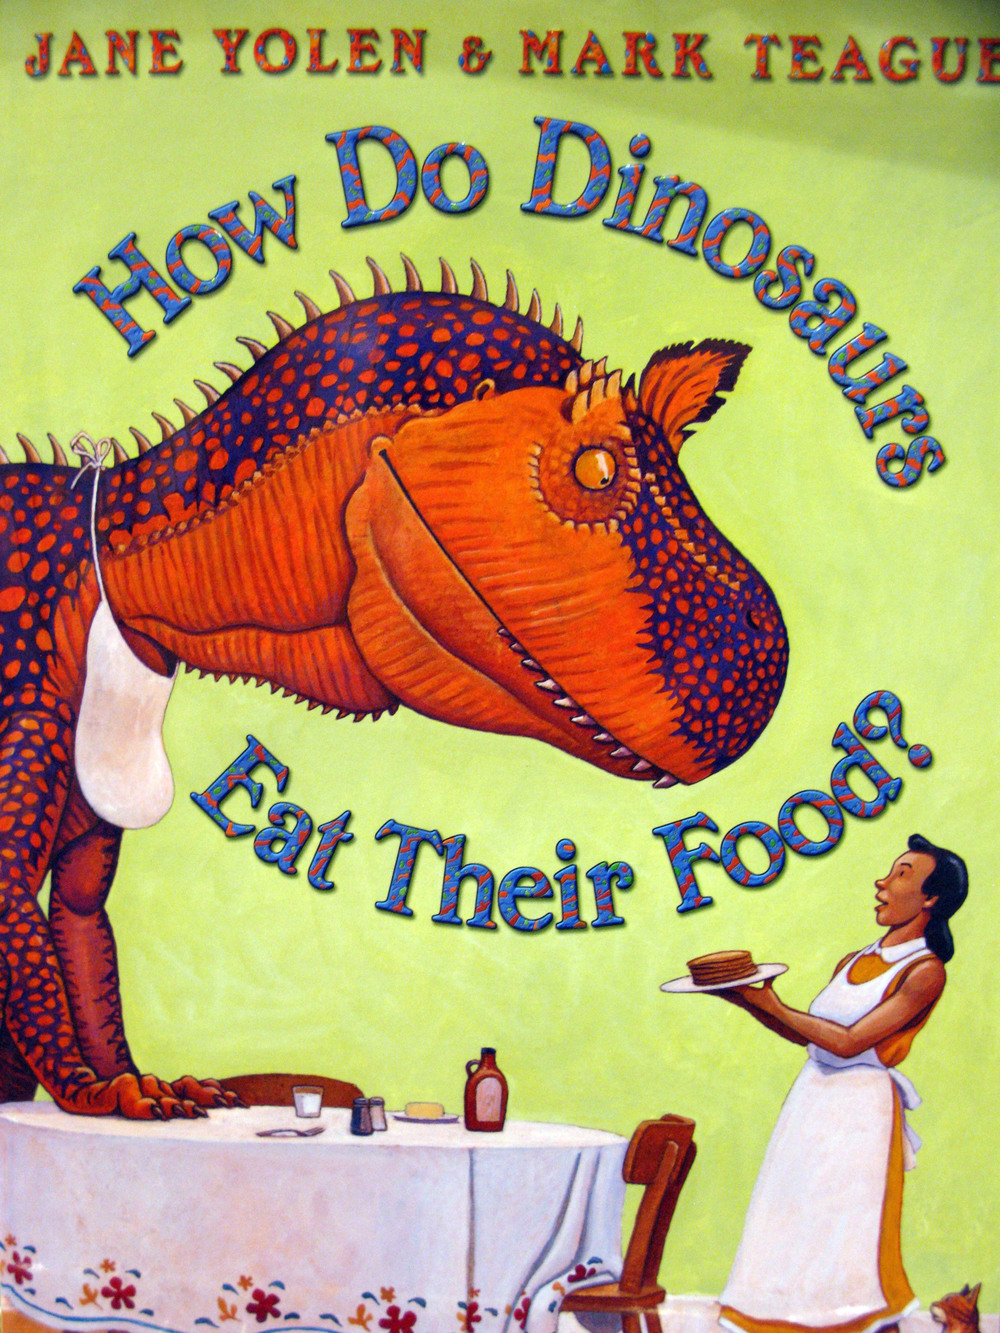 dinos-eat-their-food.jpg